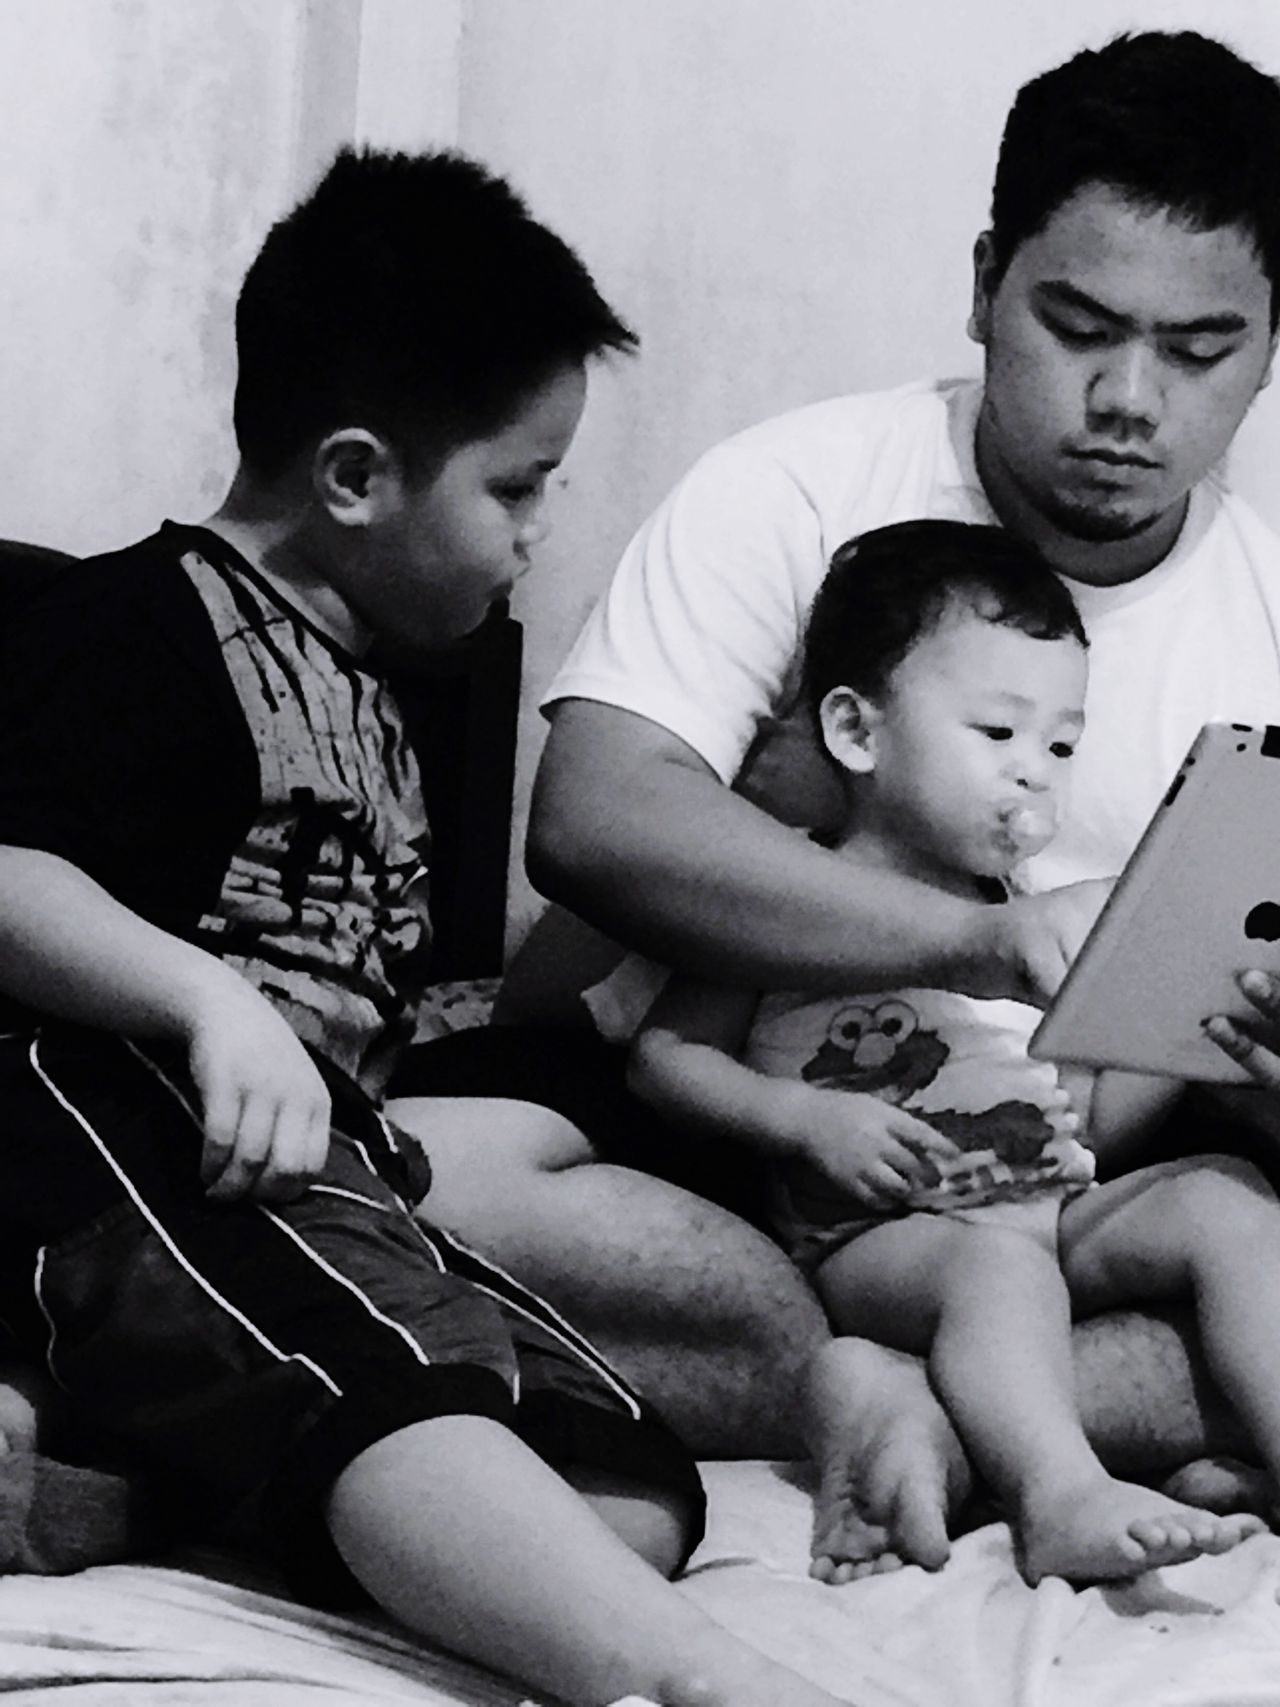 Cousins 💗 Nephewlove Family❤ Son FamilyTime Cousins ❤ RePicture Masculinity Big Brother Taking Care Love Family Faces In Places Young Adult Babies Baby Baby Boy Boys Little Boy Here Belongs To Me Telling Stories Differently Human Meets Technology